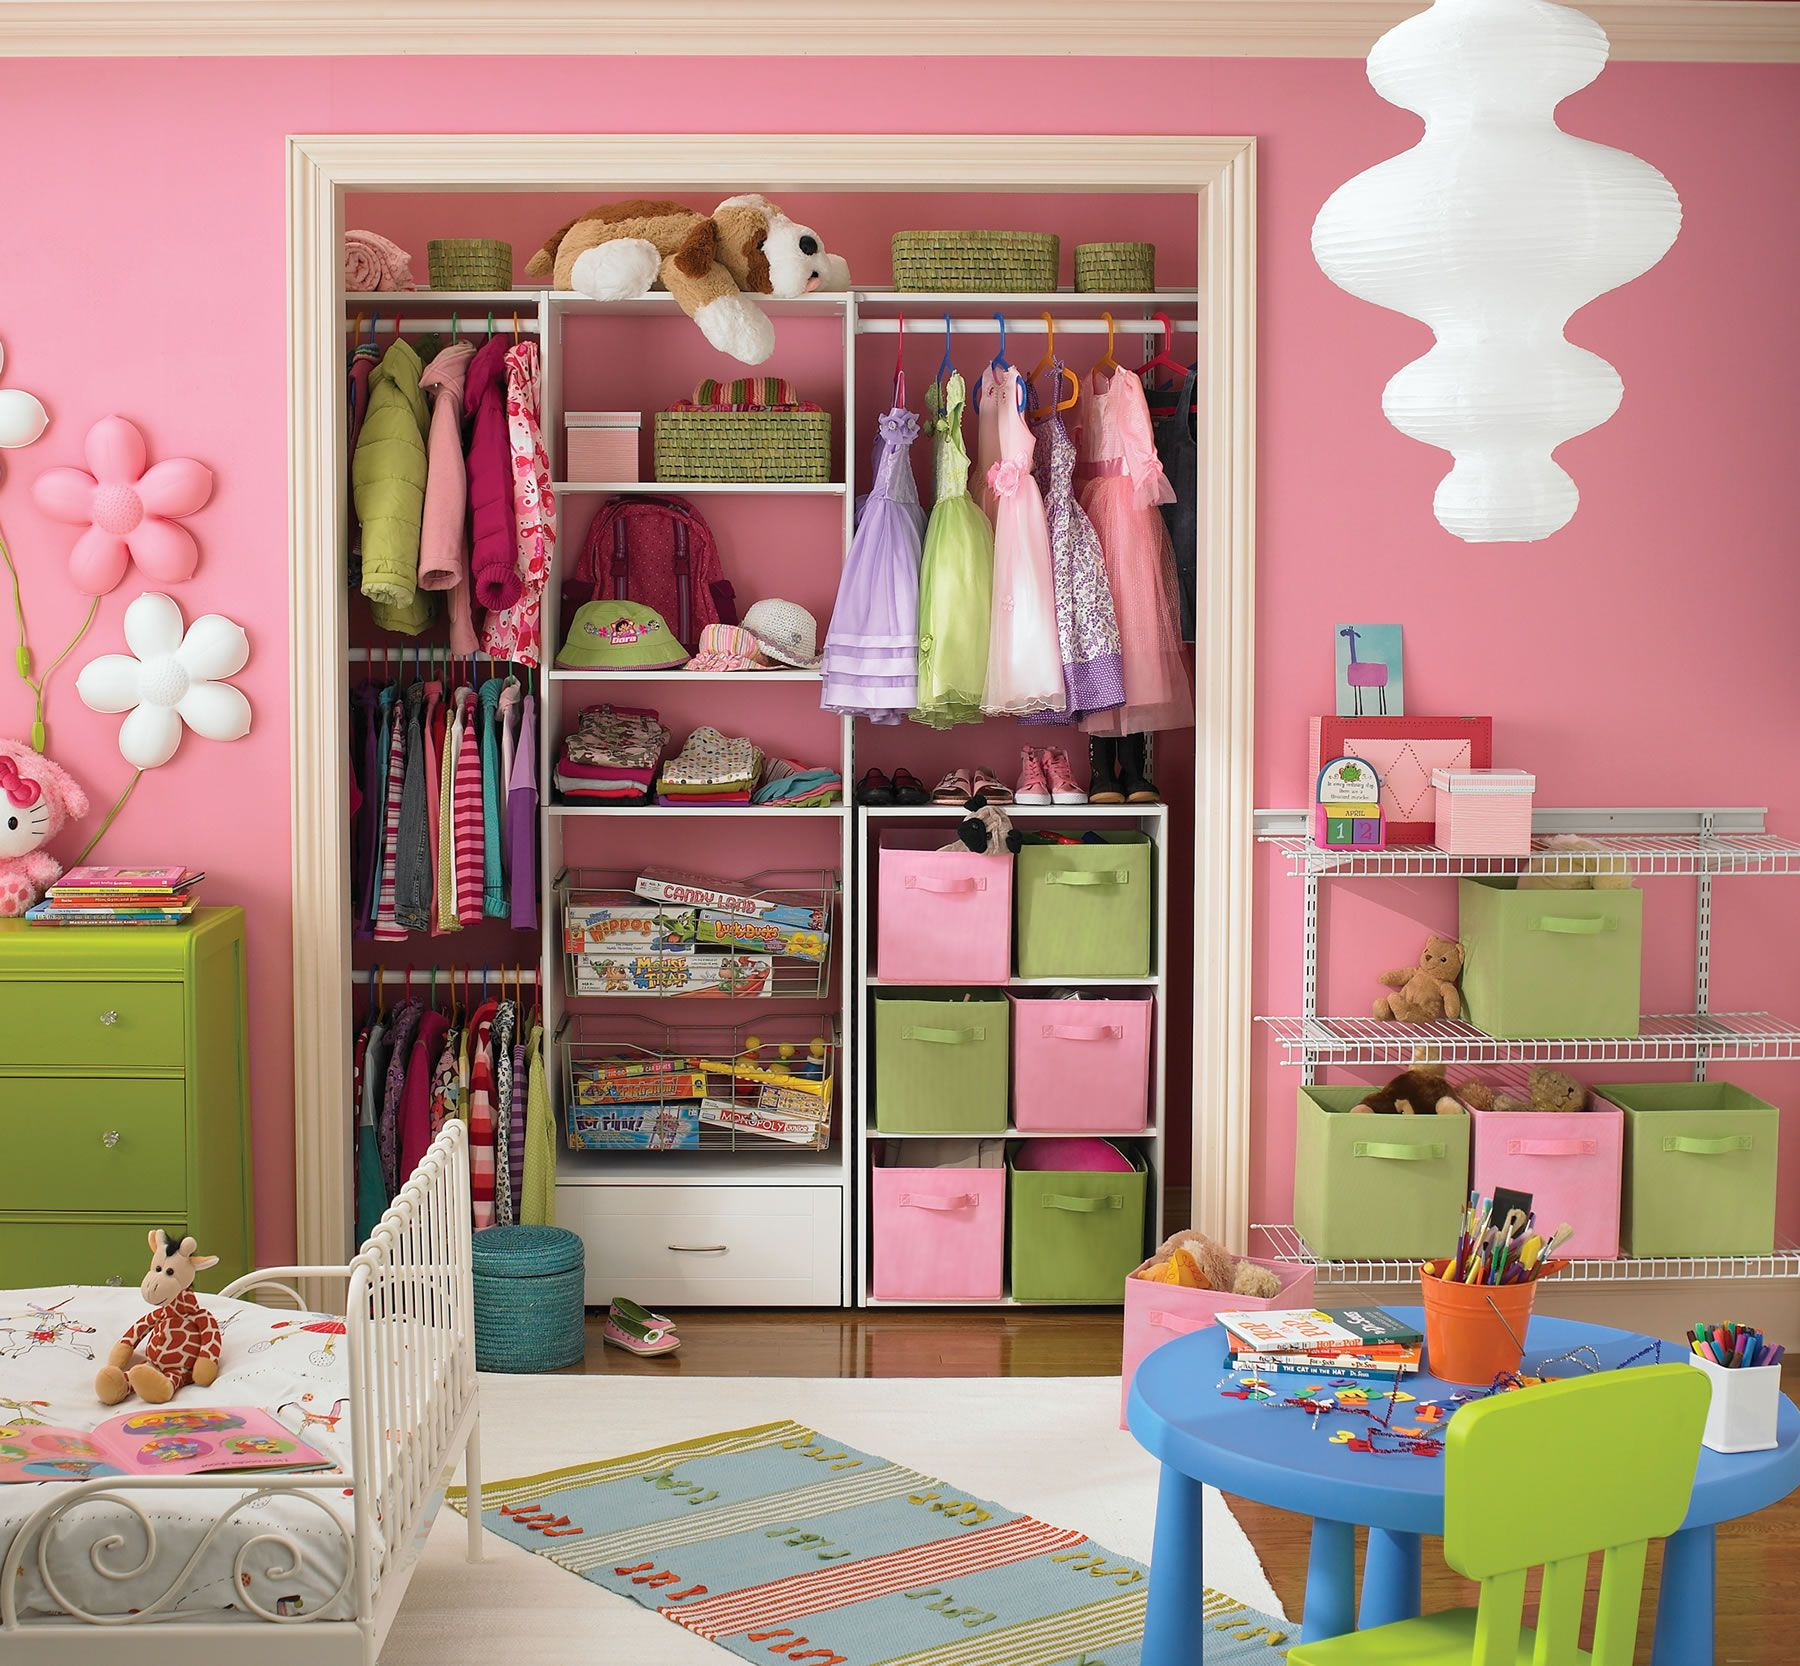 Cabinet Design For Clothes For Kids Guest Blogger How To Find Motivation To Get & Stay Organized